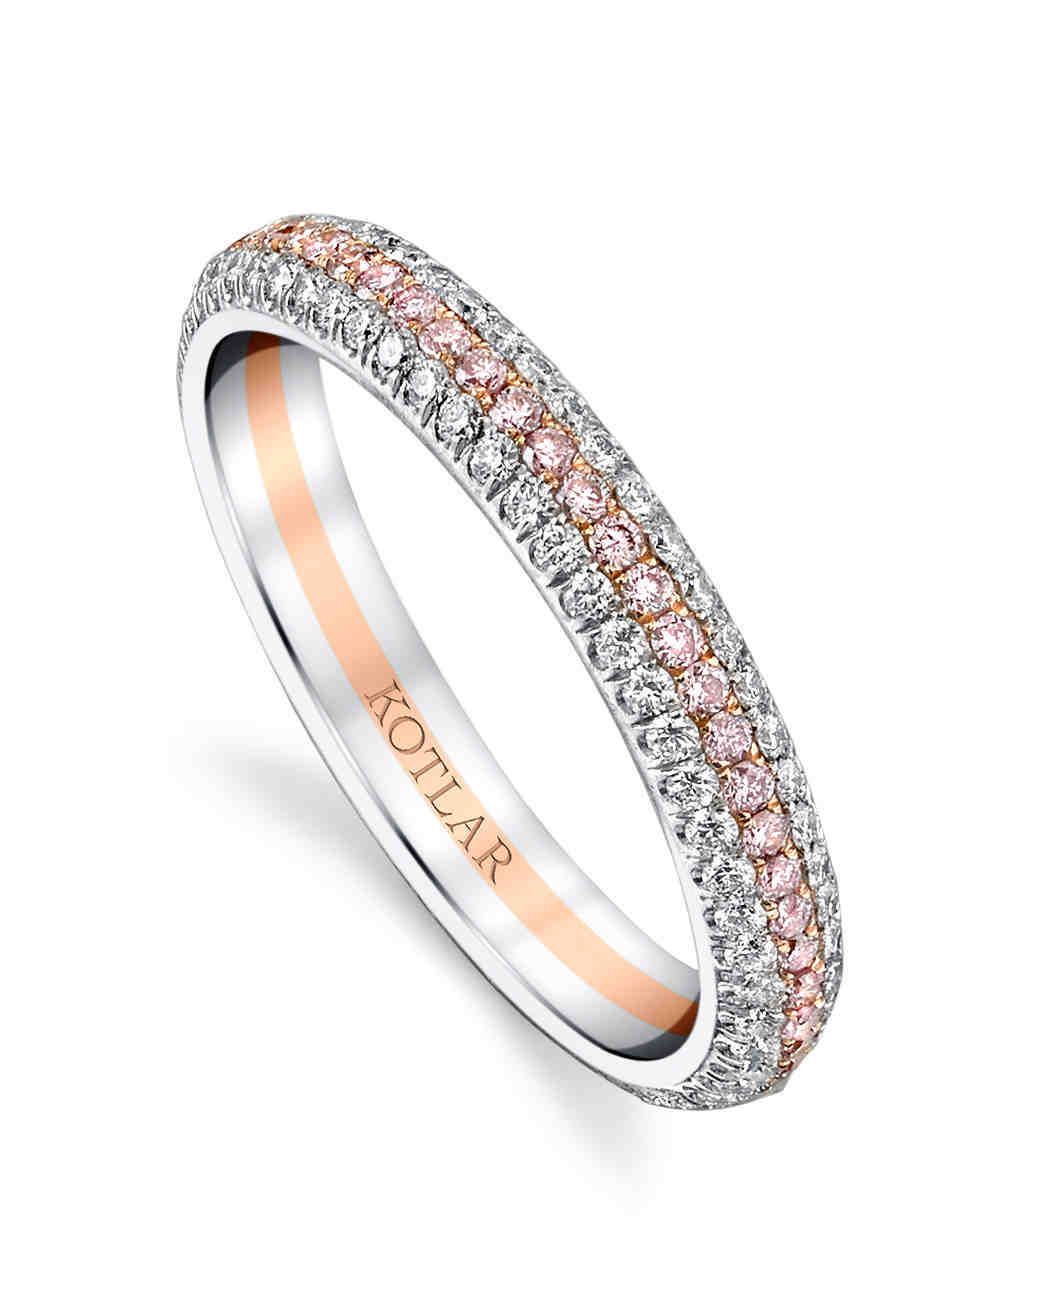 online releases over jewellery a and new wedding rub diamonds set weddingengagebridalsets ring engagement diamond of the htm rings bridal setround cut launches matching range diamondsandringsonline with jeweller